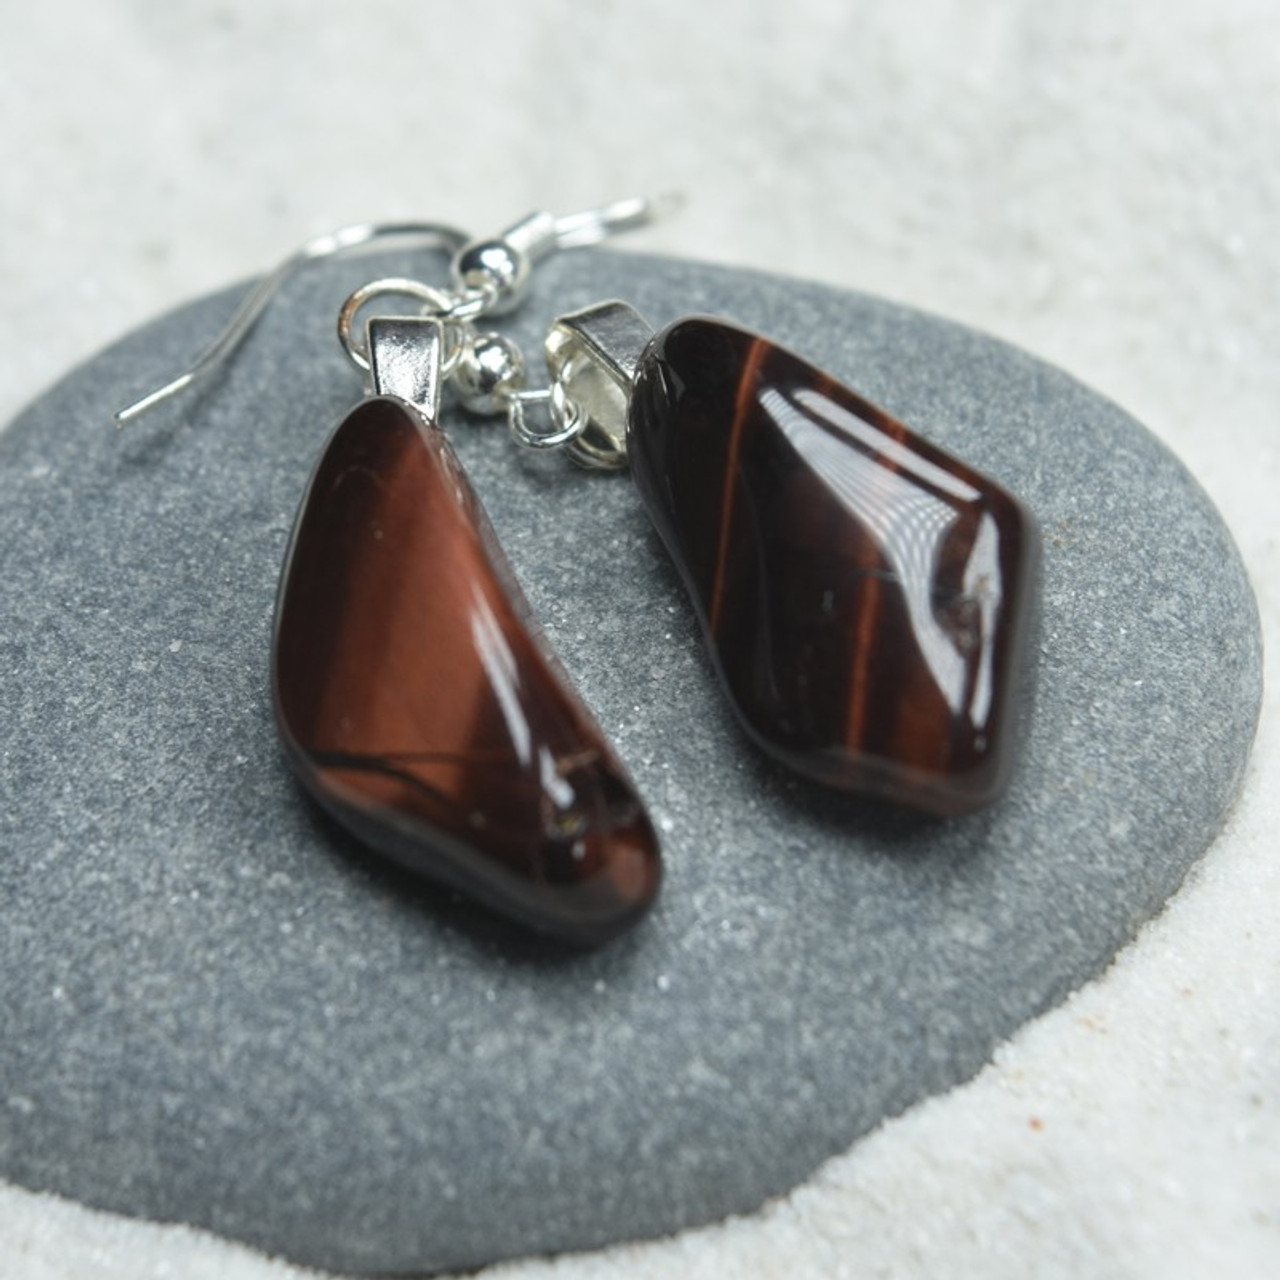 Tumbled Red Tiger's Eye Stone Earrings